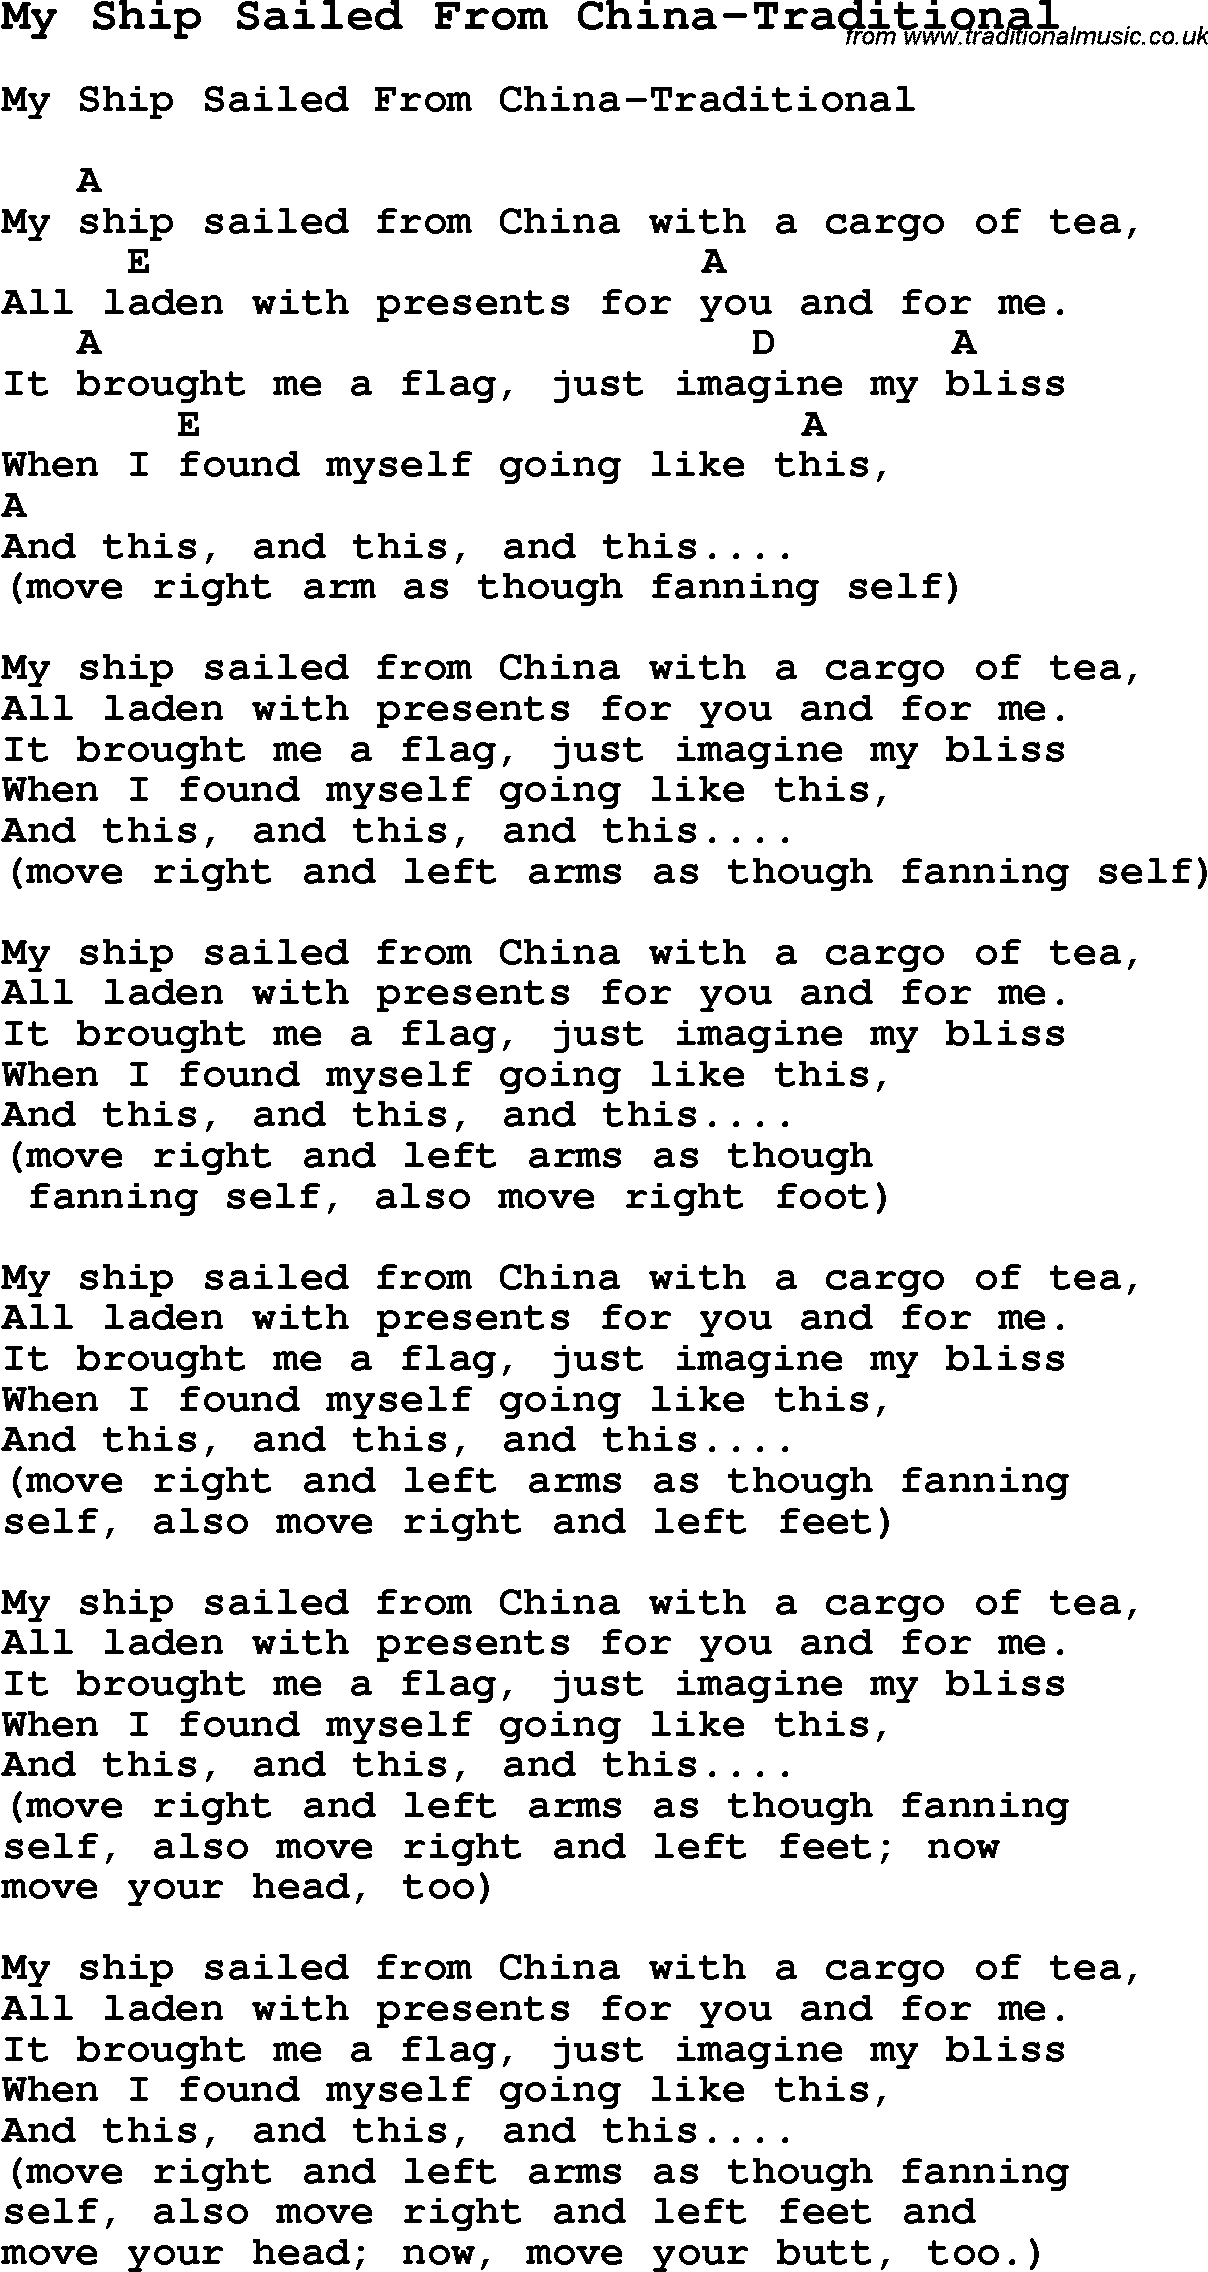 Summer Camp Song, My Ship Sailed From China-Traditional